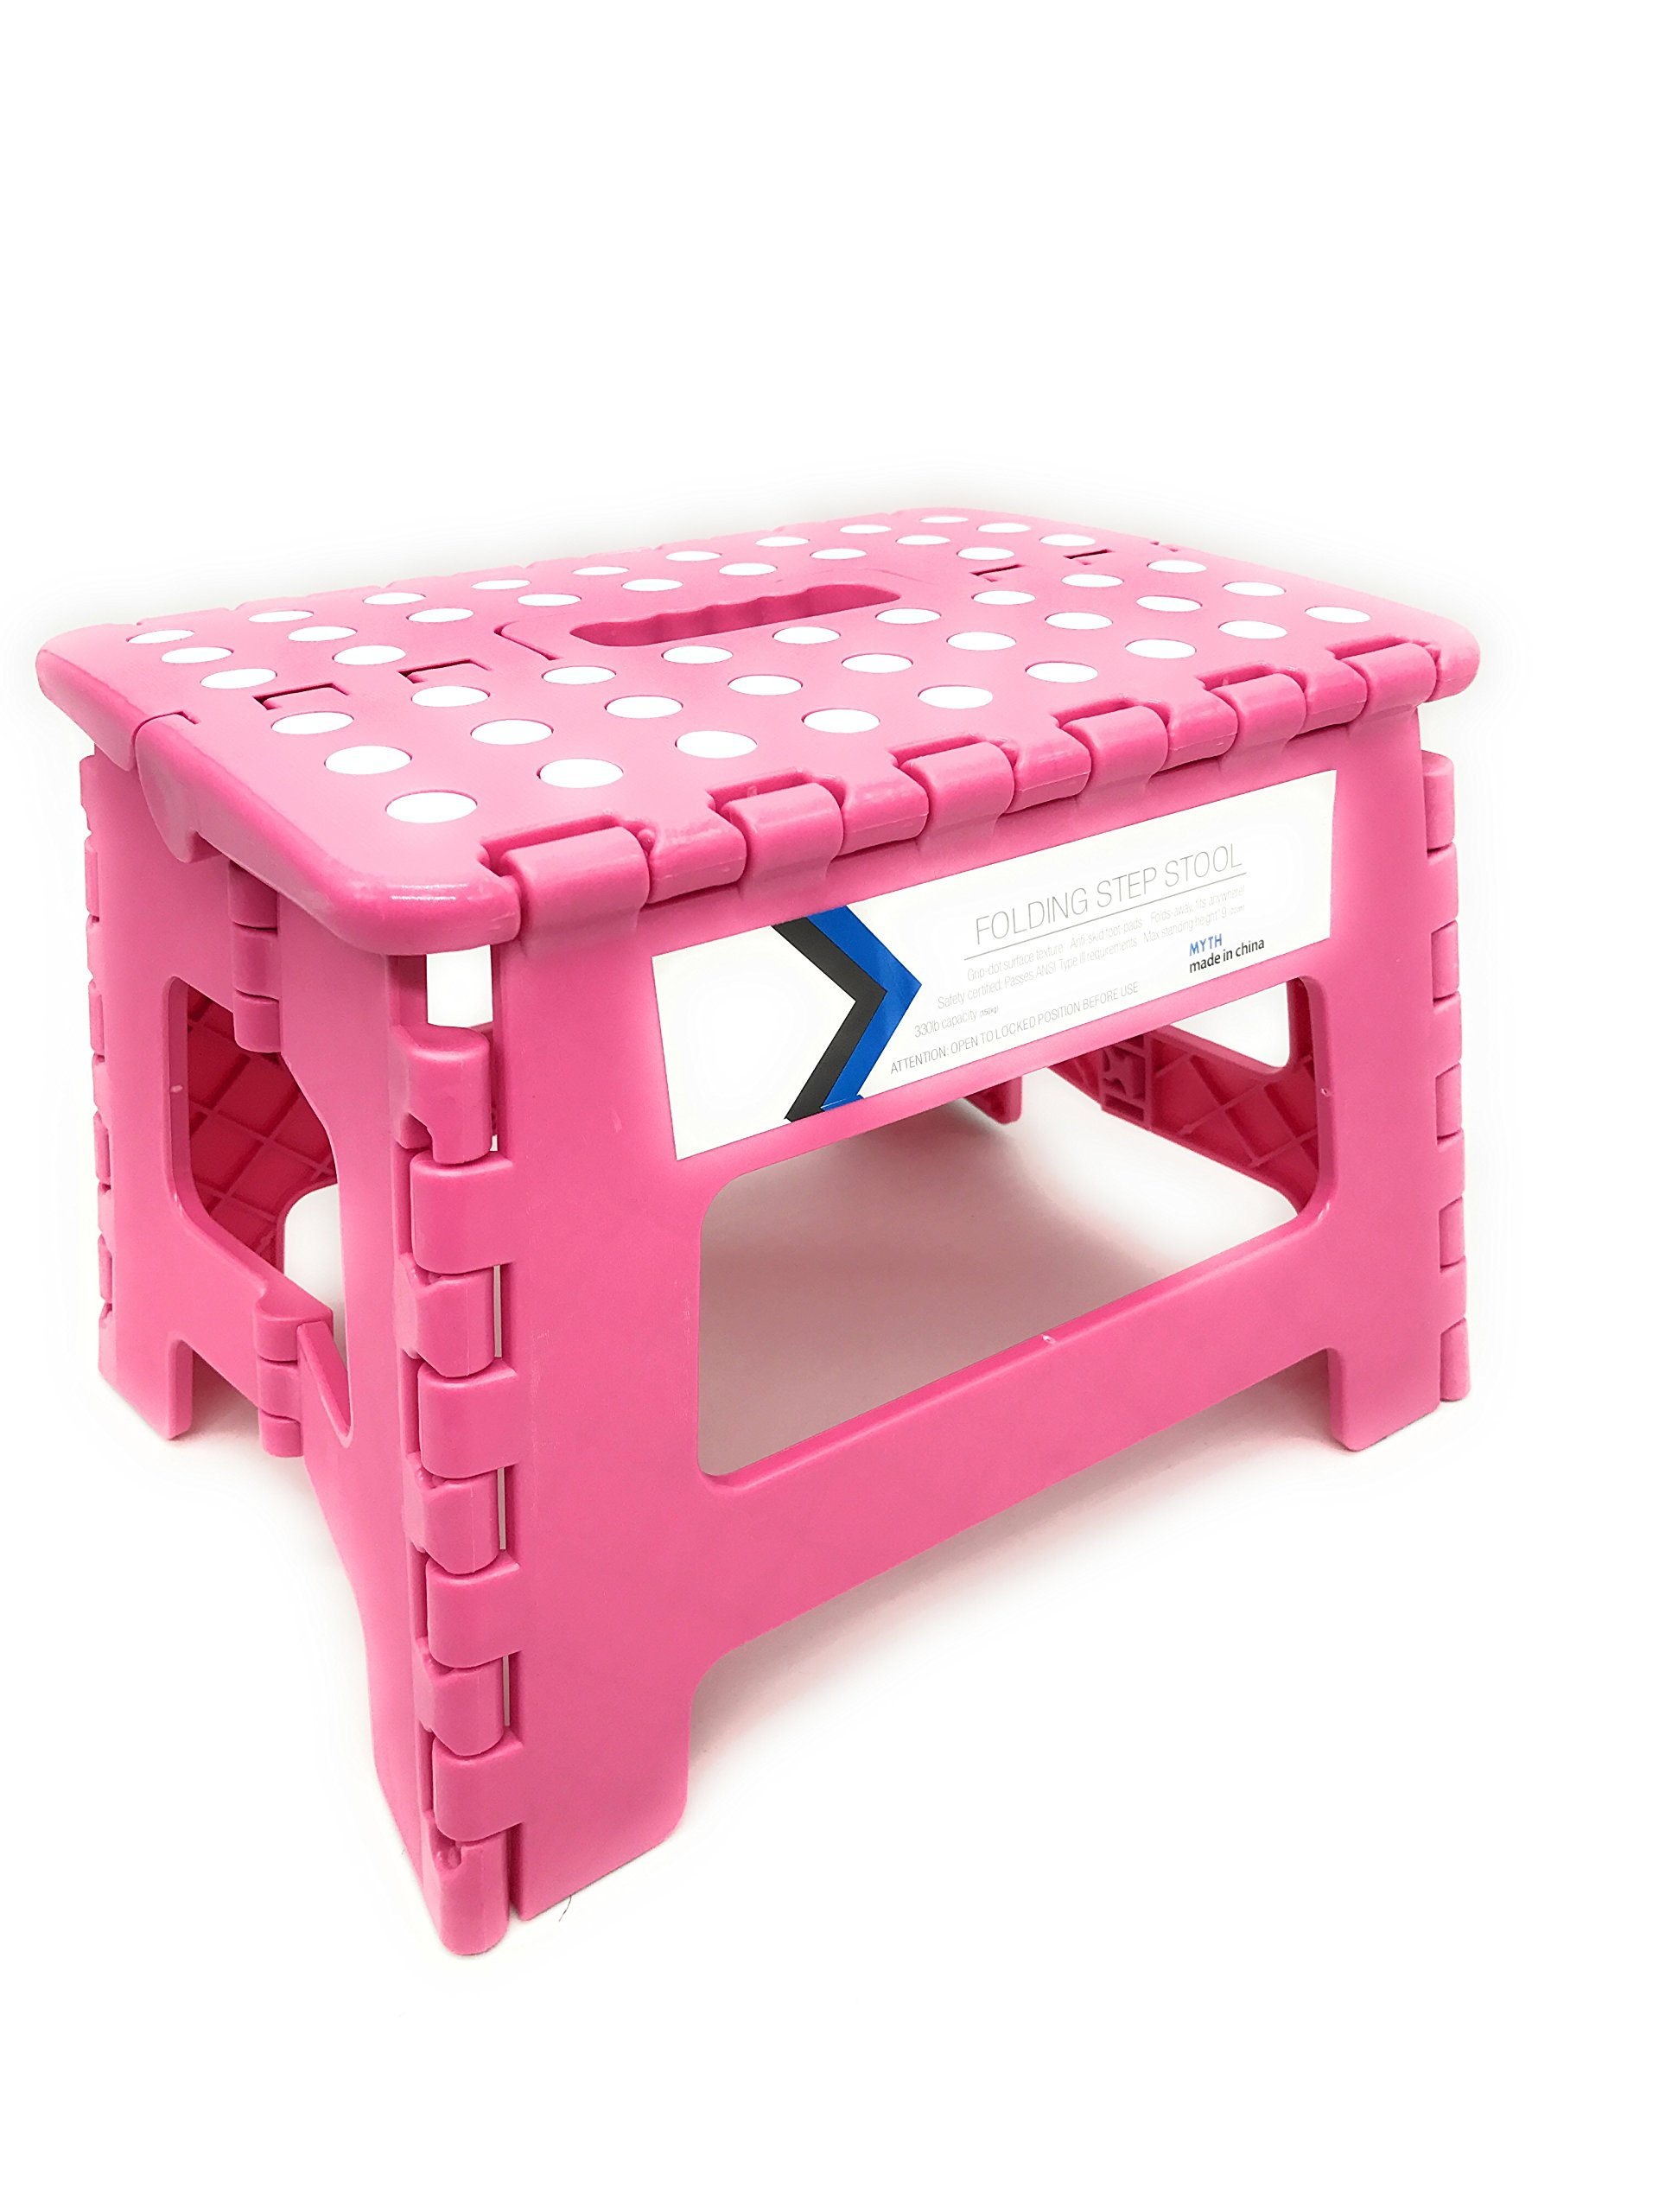 Folding Step Stool 9 Inches Height by Myth with Anti-Slip SurfaceGreat for Kitchen, Bathroom, Bedroom, Kids or Adults Super Strong Holds Up to 300 LBS (pink)